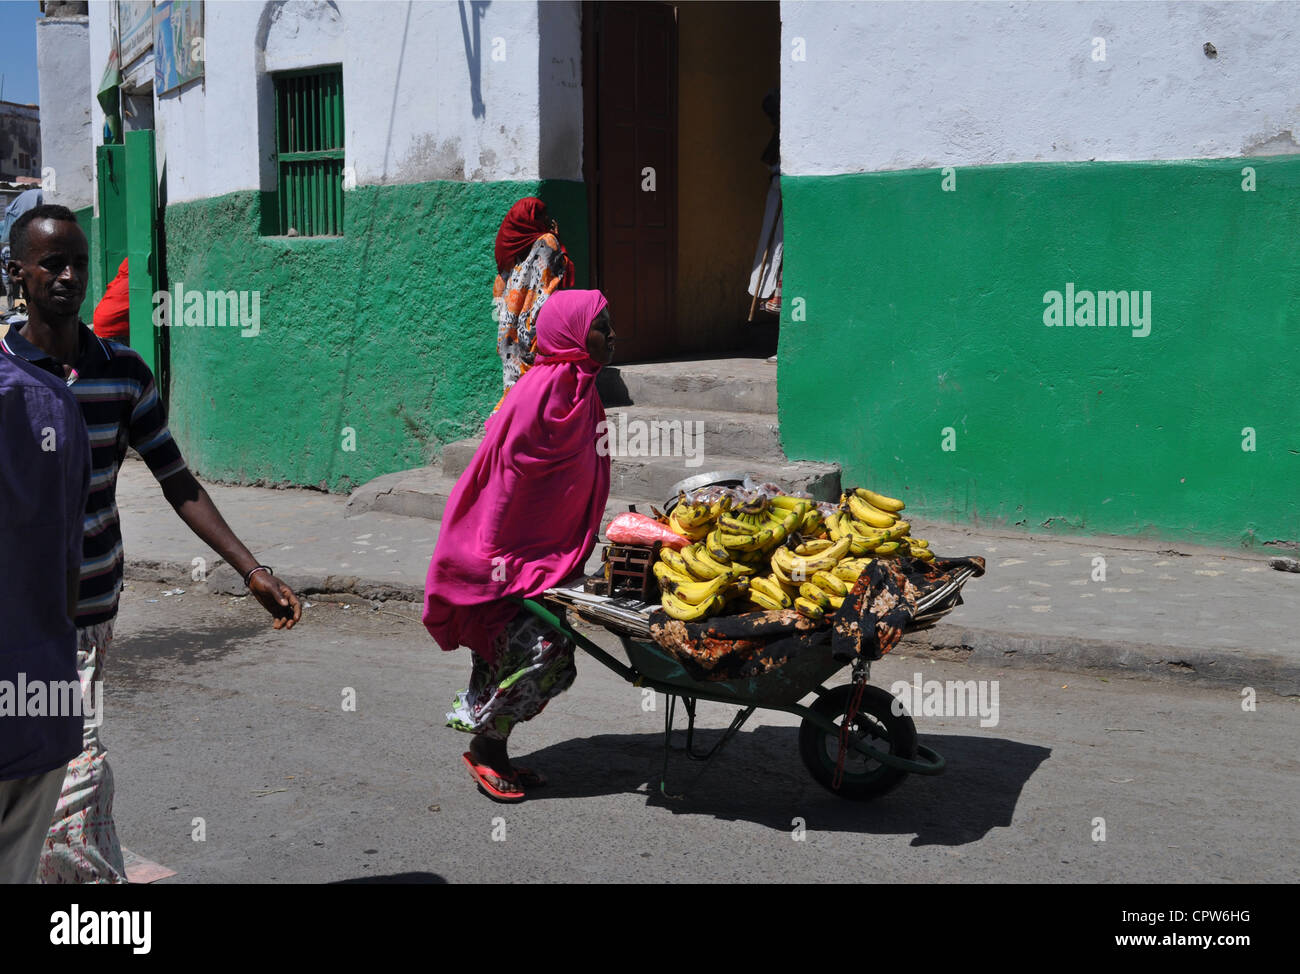 A street scene in Djibouti City - Stock Image